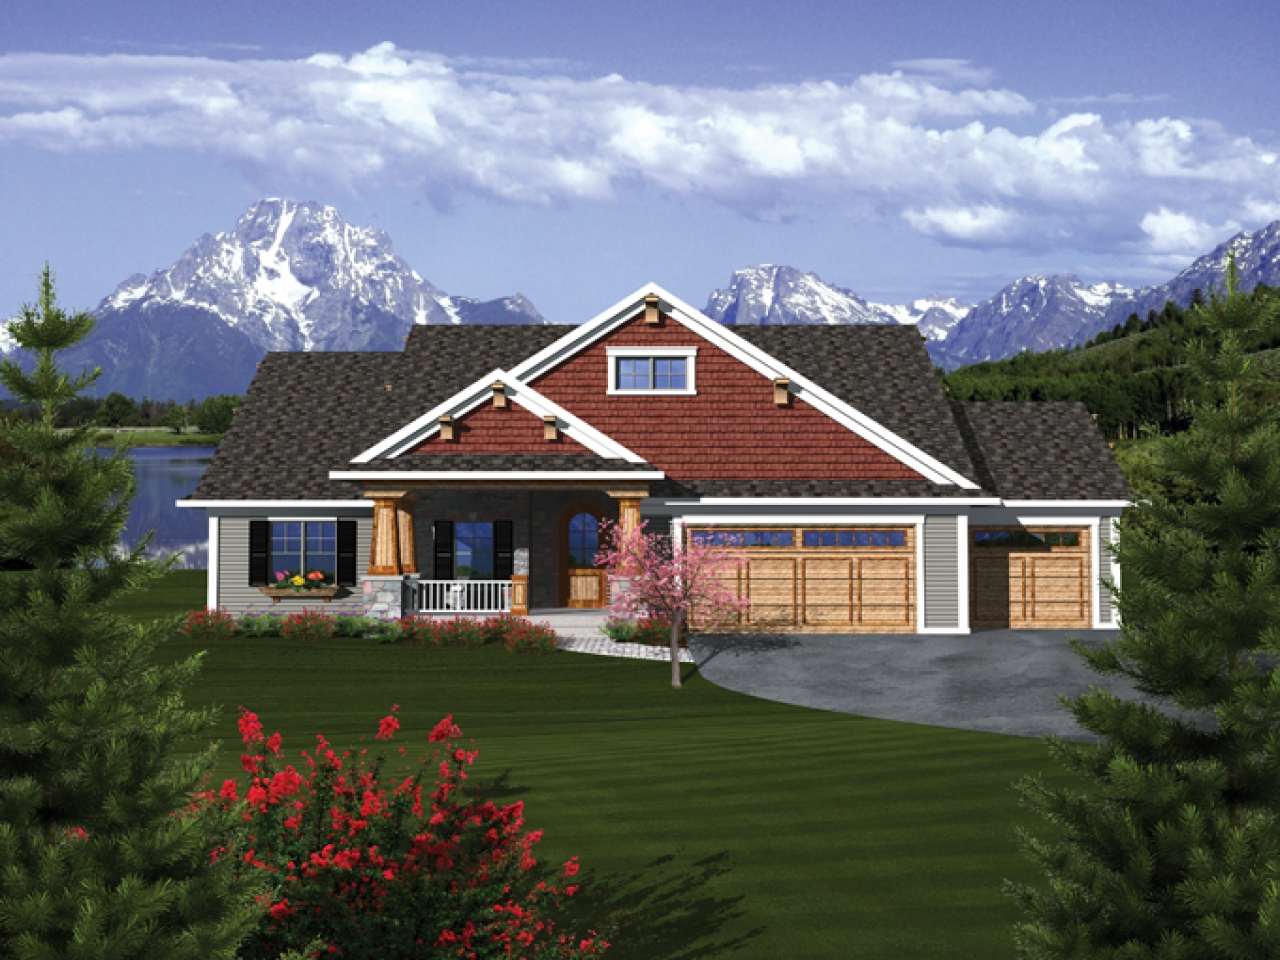 Craftsman ranch house plans with 3 car garage craftsman for Ranch house plans with garage